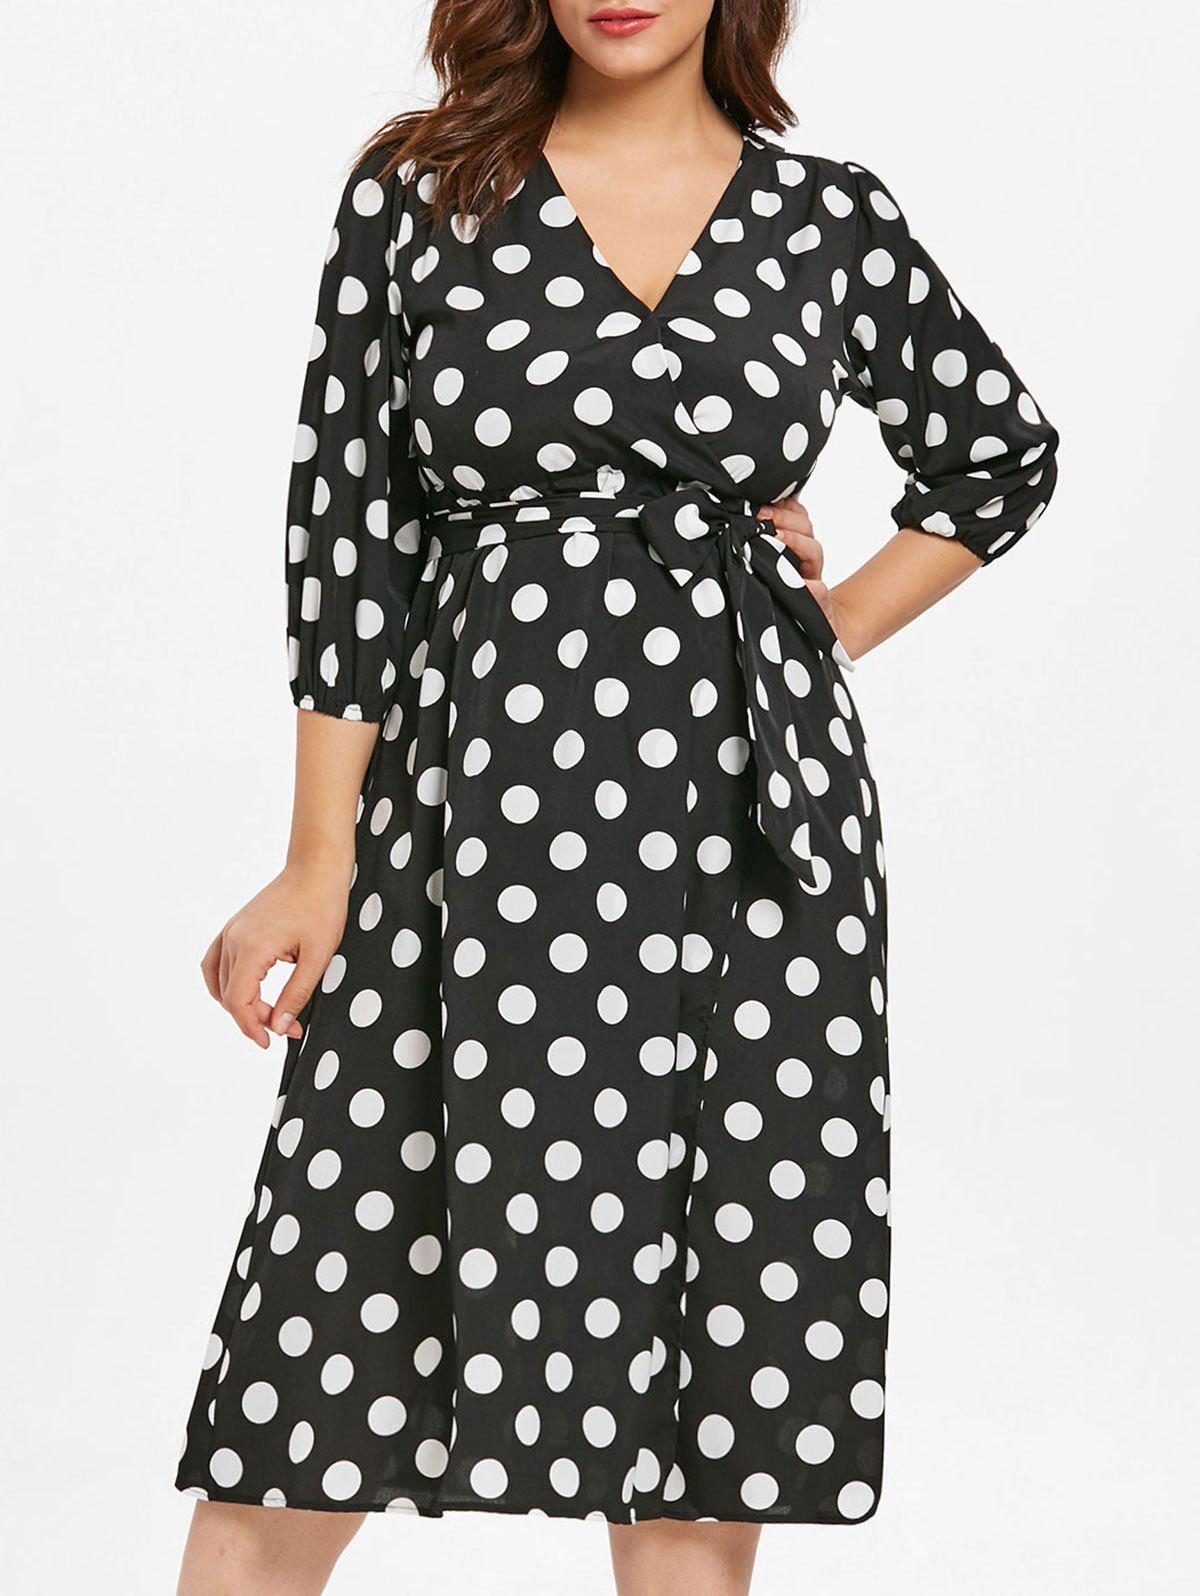 9711daae42 36% OFF] Plus Size Polka Dot Surplice Dress | Rosegal